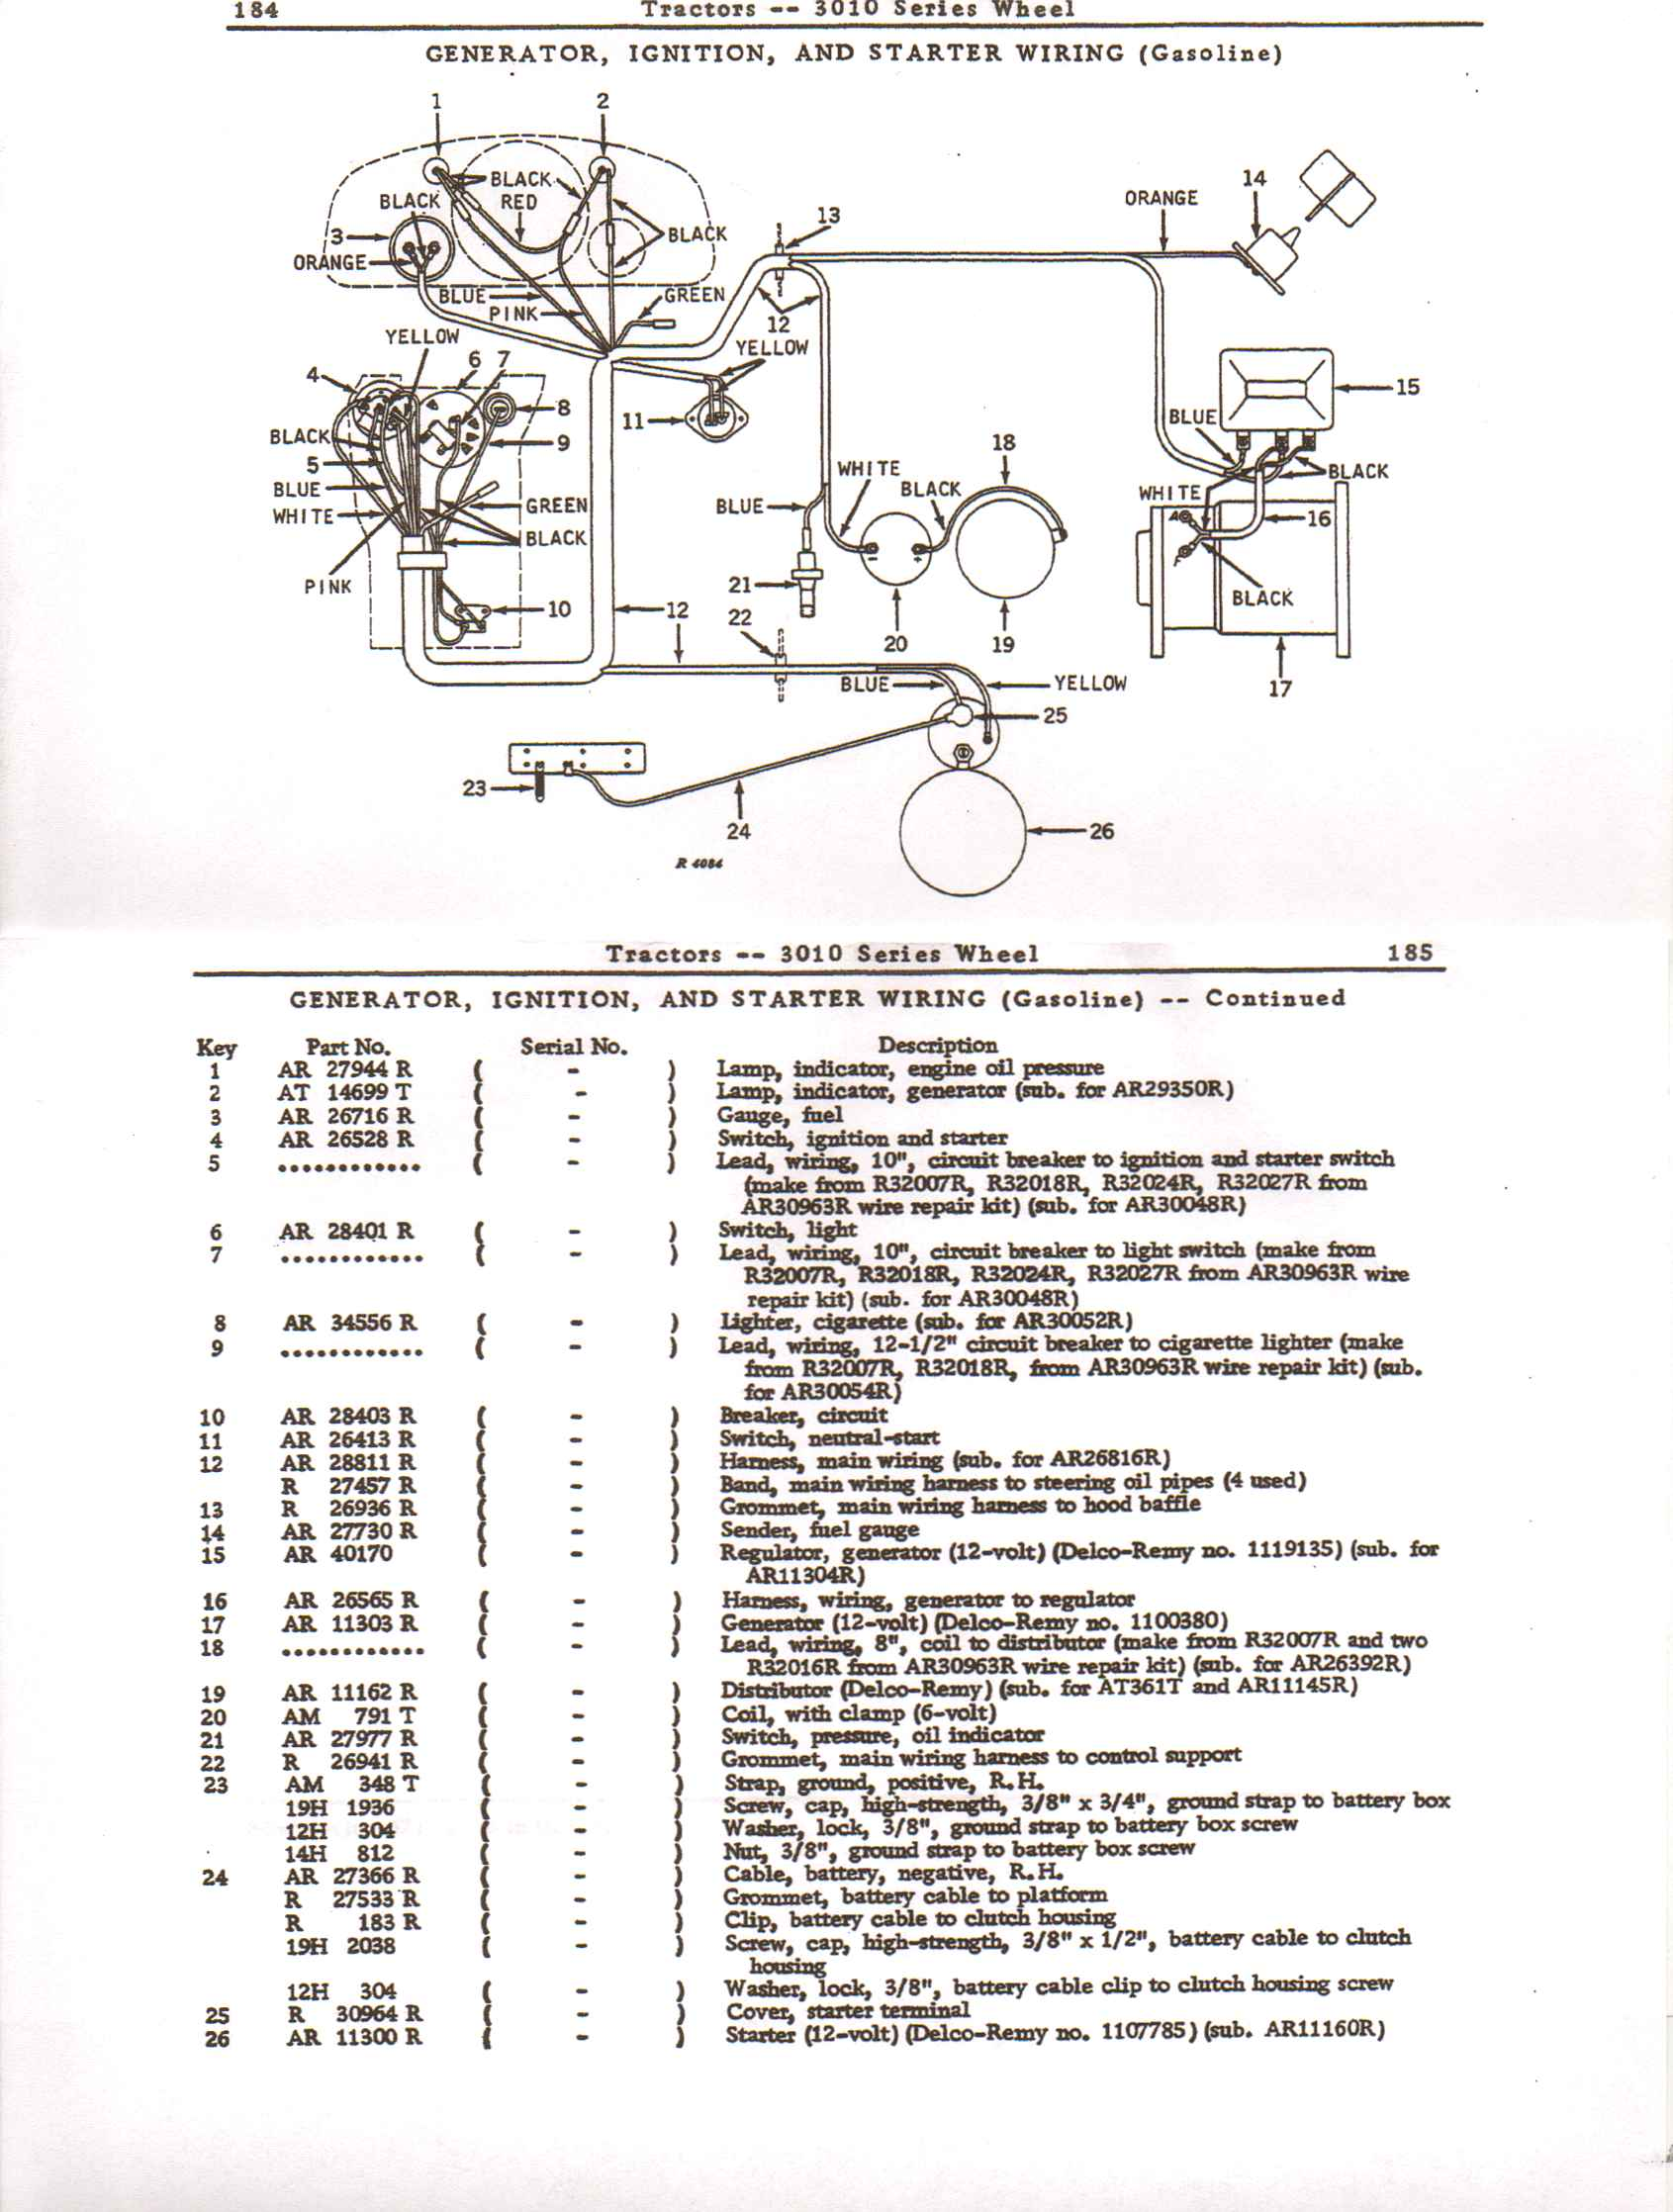 john deere 4020 24v to 12v conversion wiring diagram john wiring diagram for 4020 john deere tractor the wiring diagram on john deere 4020 24v to